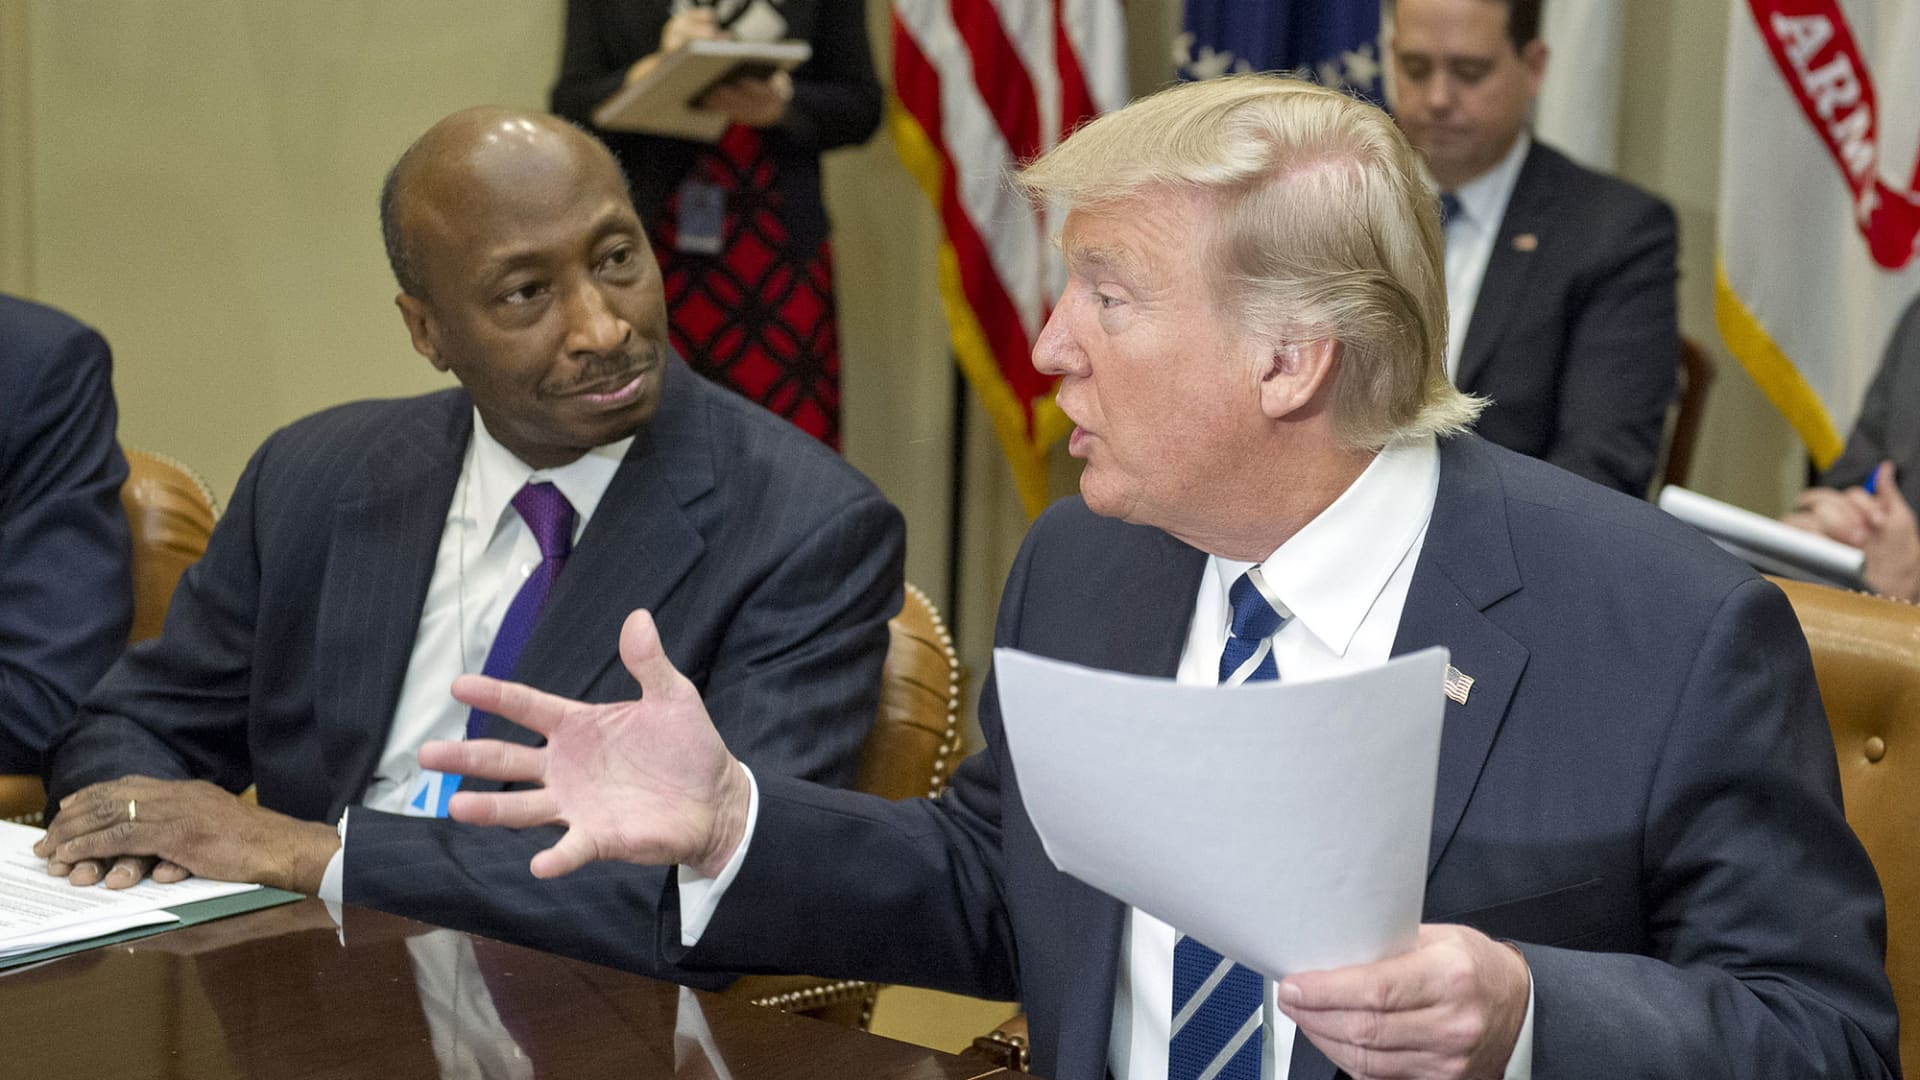 President Donald Trump, right, speaks as Ken Frazier, chairman and chief executive officer of Merck & Co., listens during a meeting with representatives from the Pharmaceutical Research and Manufacturers of America (PhRMA) at the White House in Washington, D.C., U.S., on Tuesday, Jan. 31, 2017.